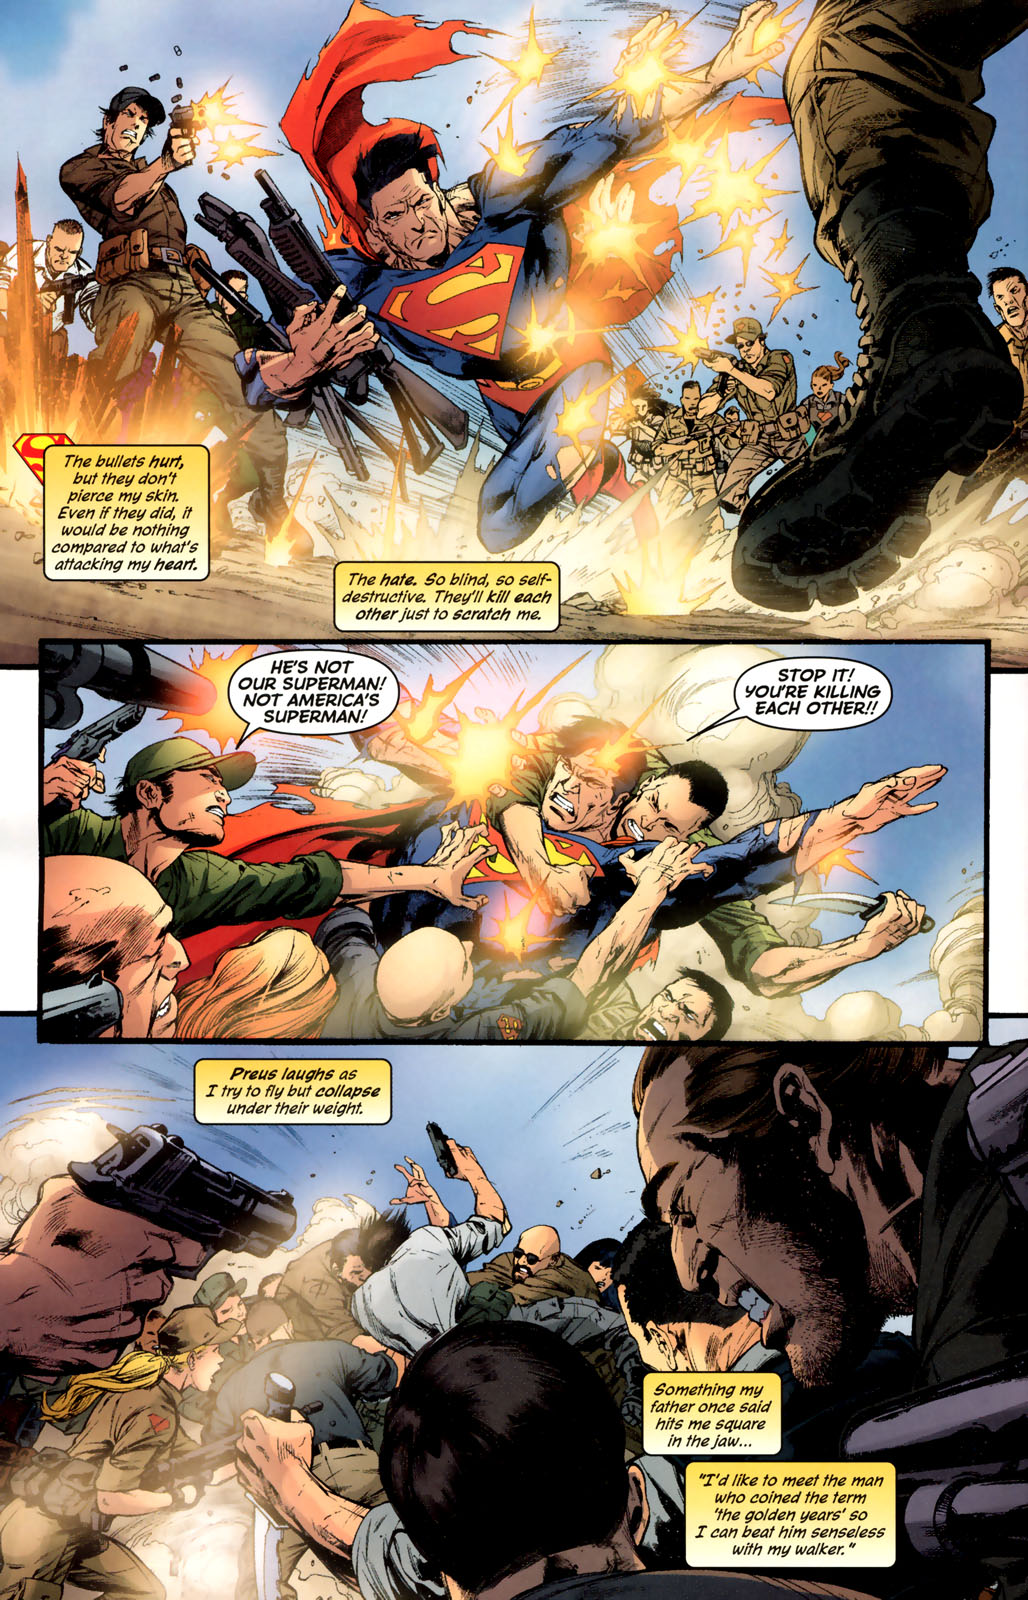 Catches and deflectes bullets whilst weakened by liquid kryptonite which also caused him to age